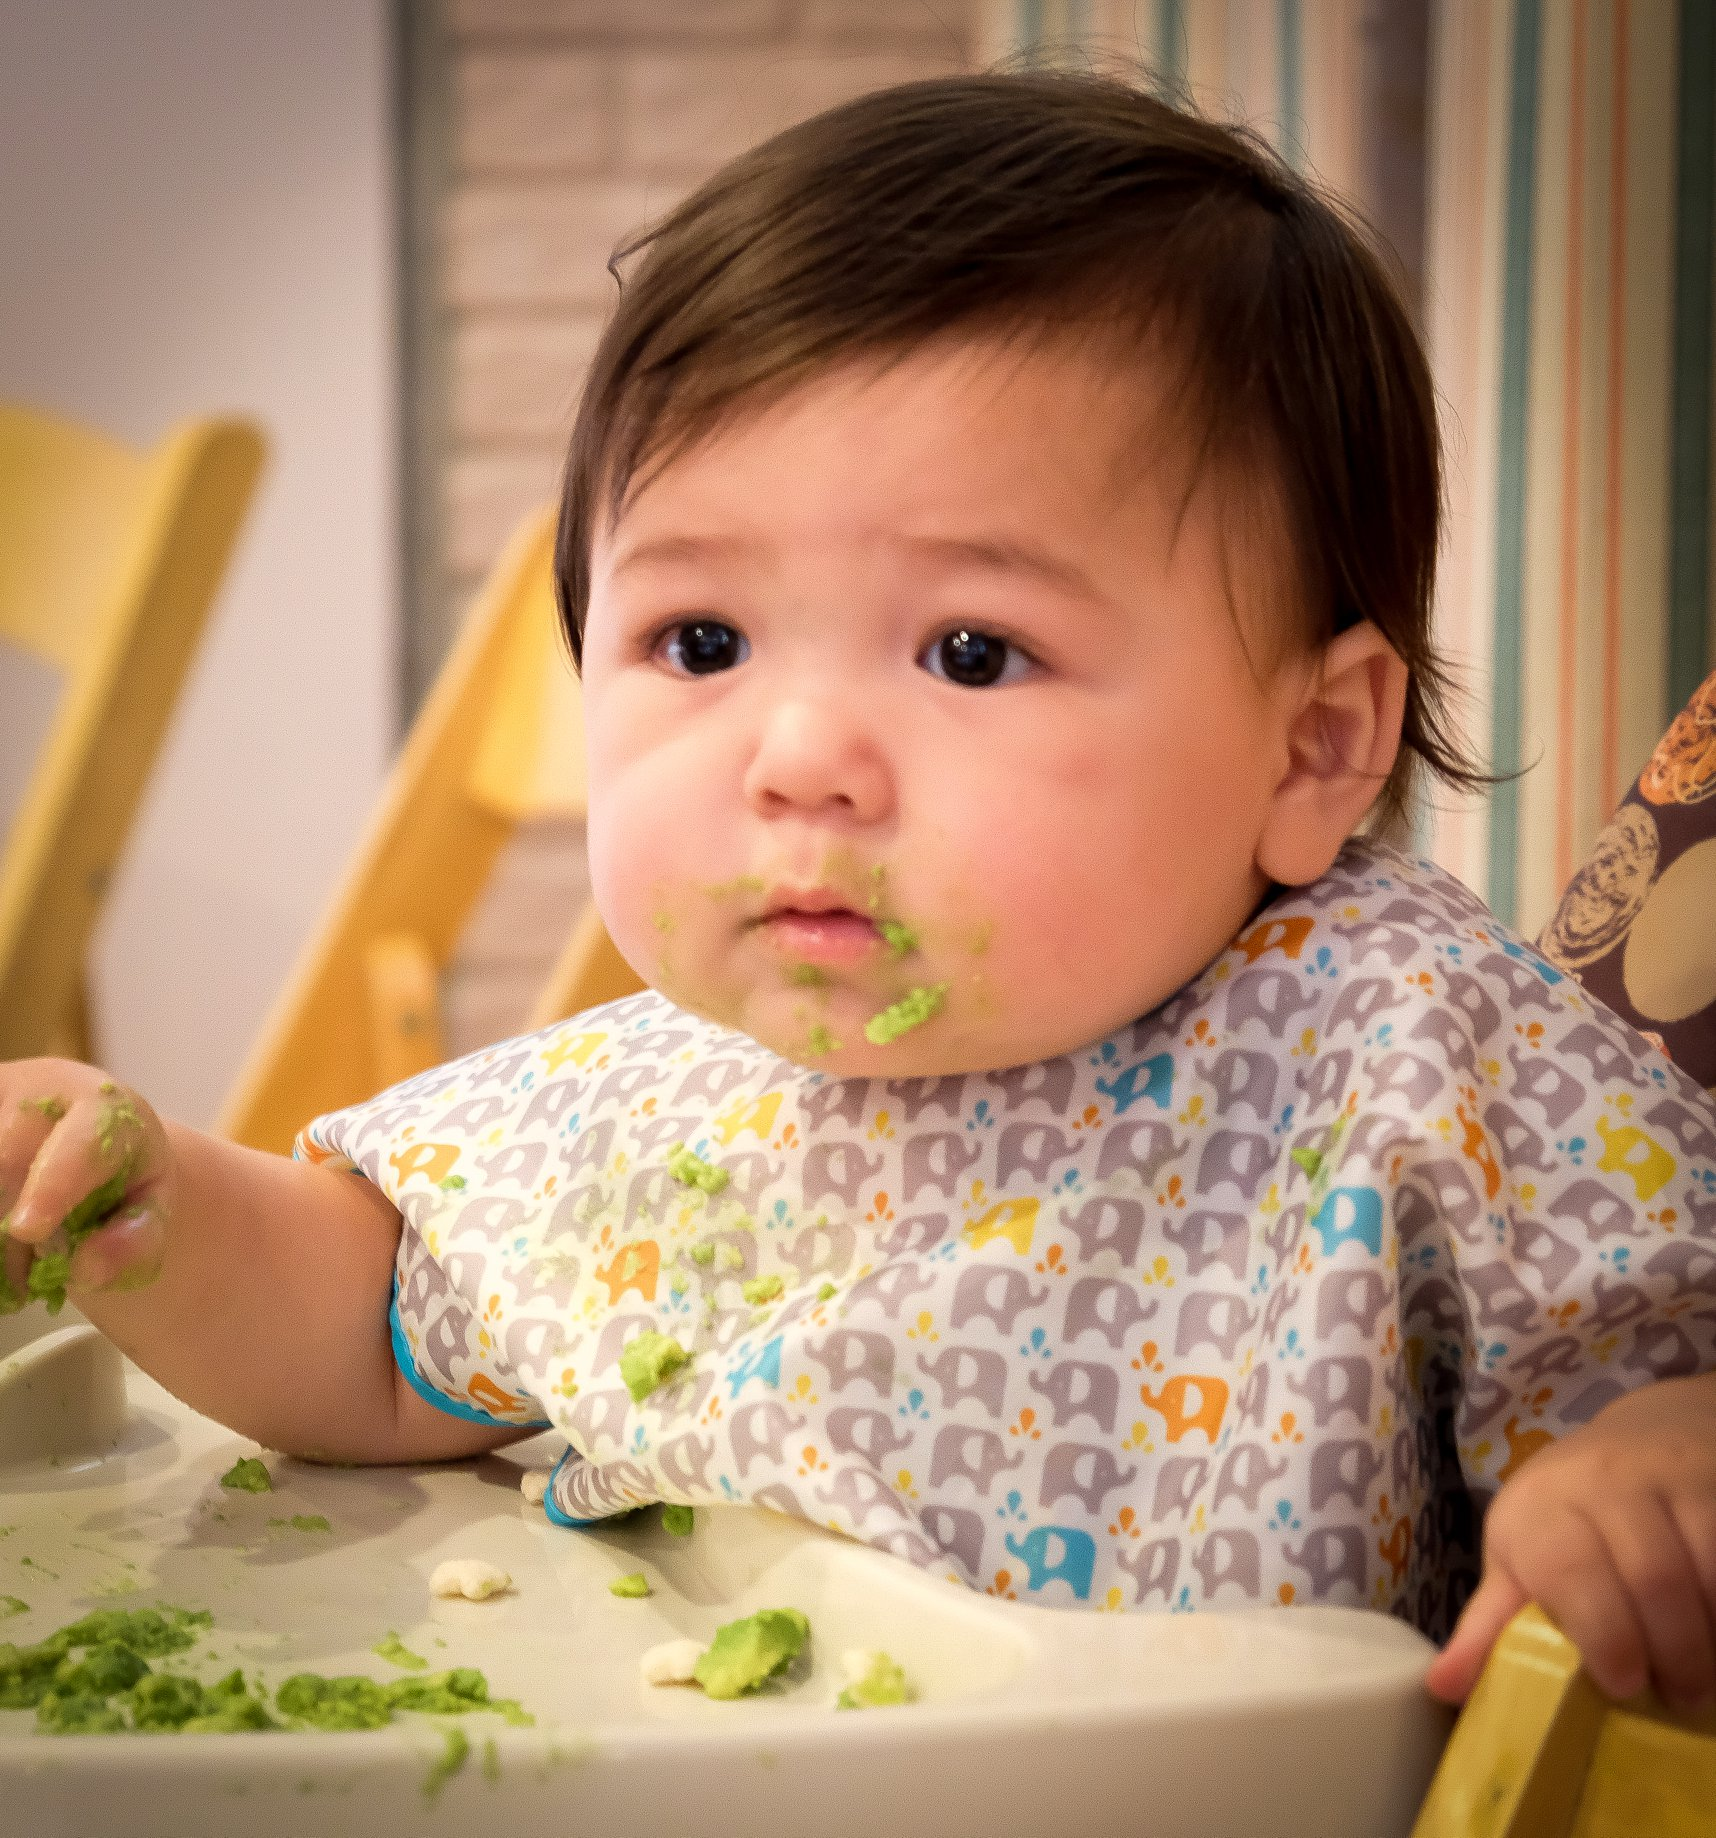 baby girl  in high chair eating with green peas on chin